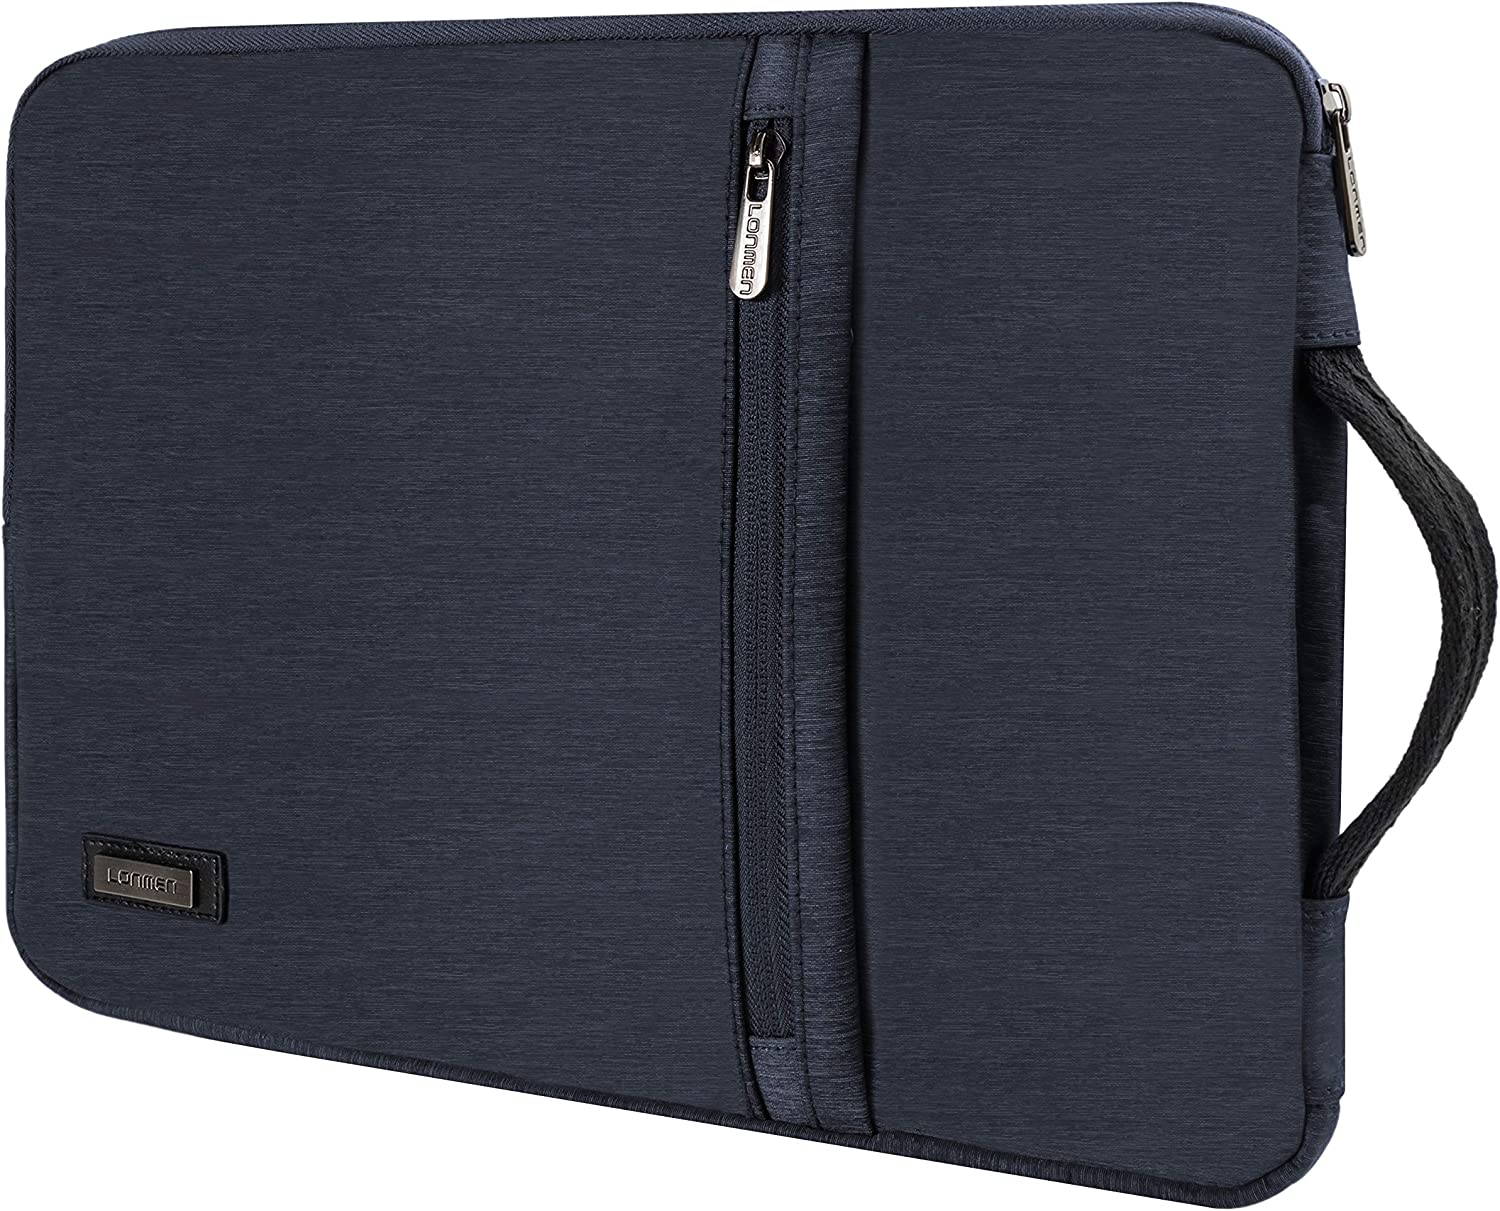 LONMEN 10.1 Inch Laptop Sleeve Case Water-Resistant Tablet Protective Carrying Handle Bag for 10.5